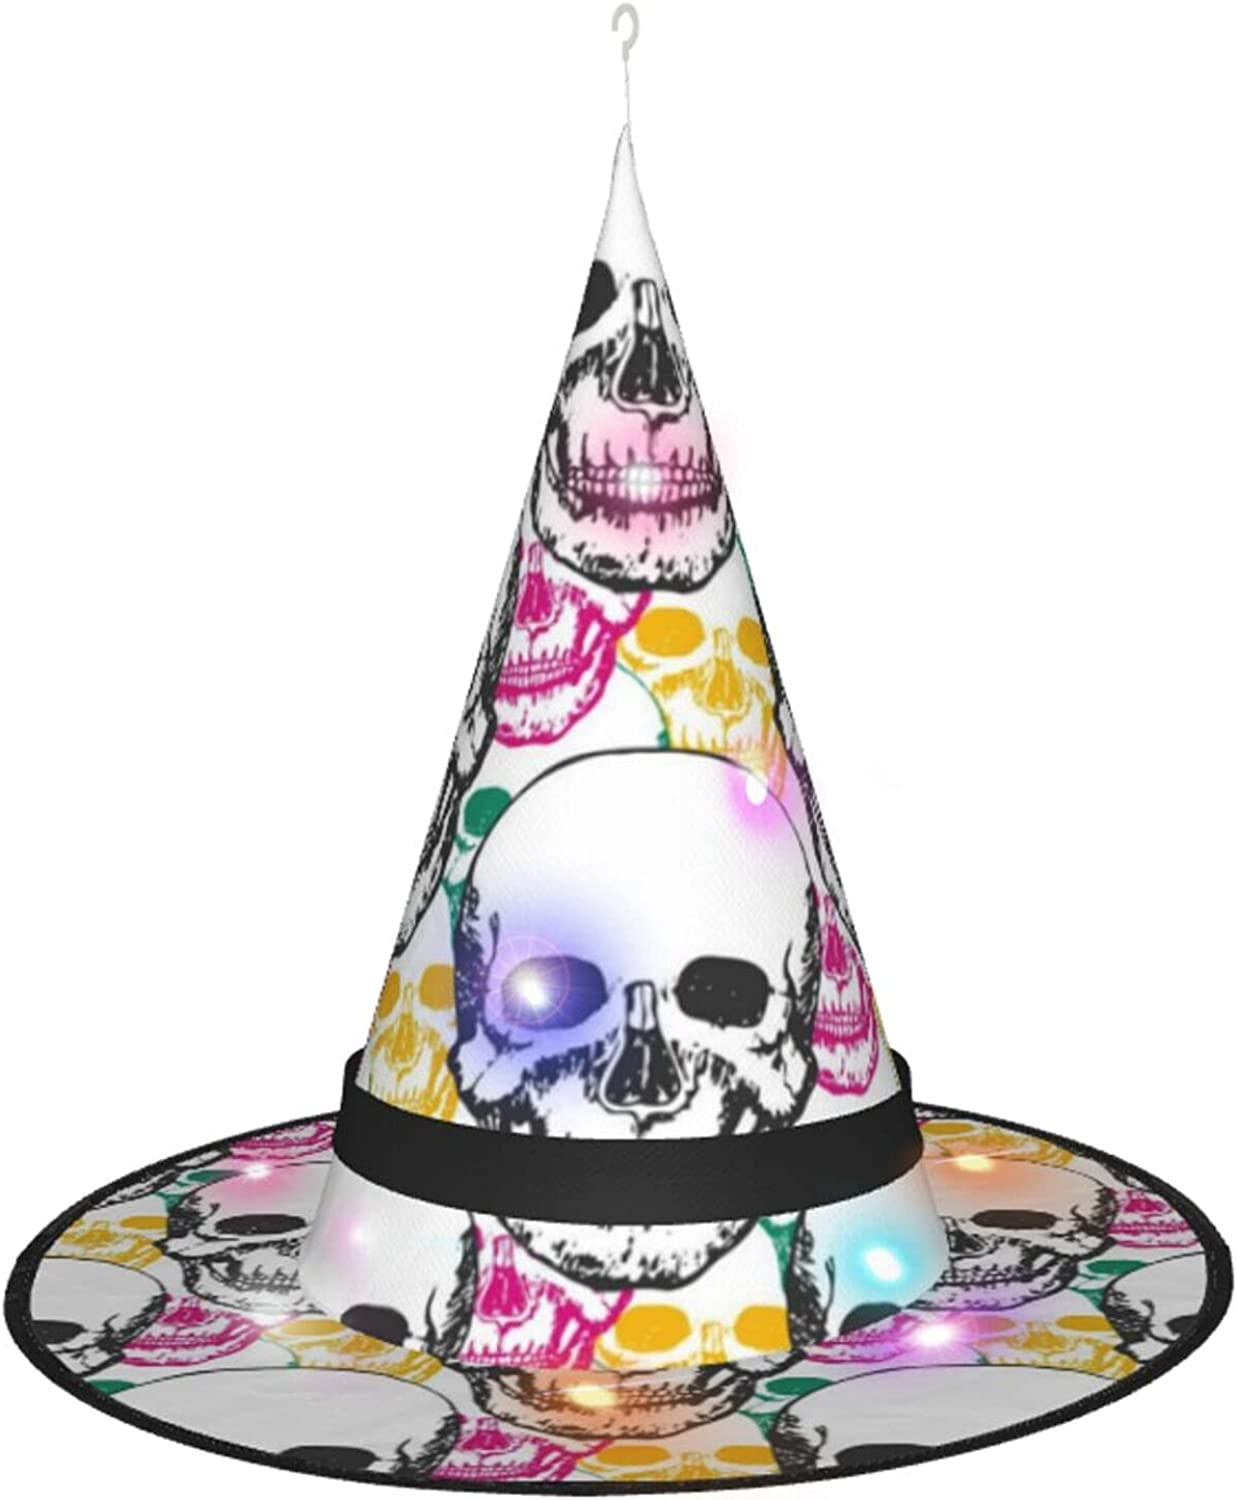 KQLH Halloween Witch Hat With Costume For Accessory Award-winning store Hallo Light Low price